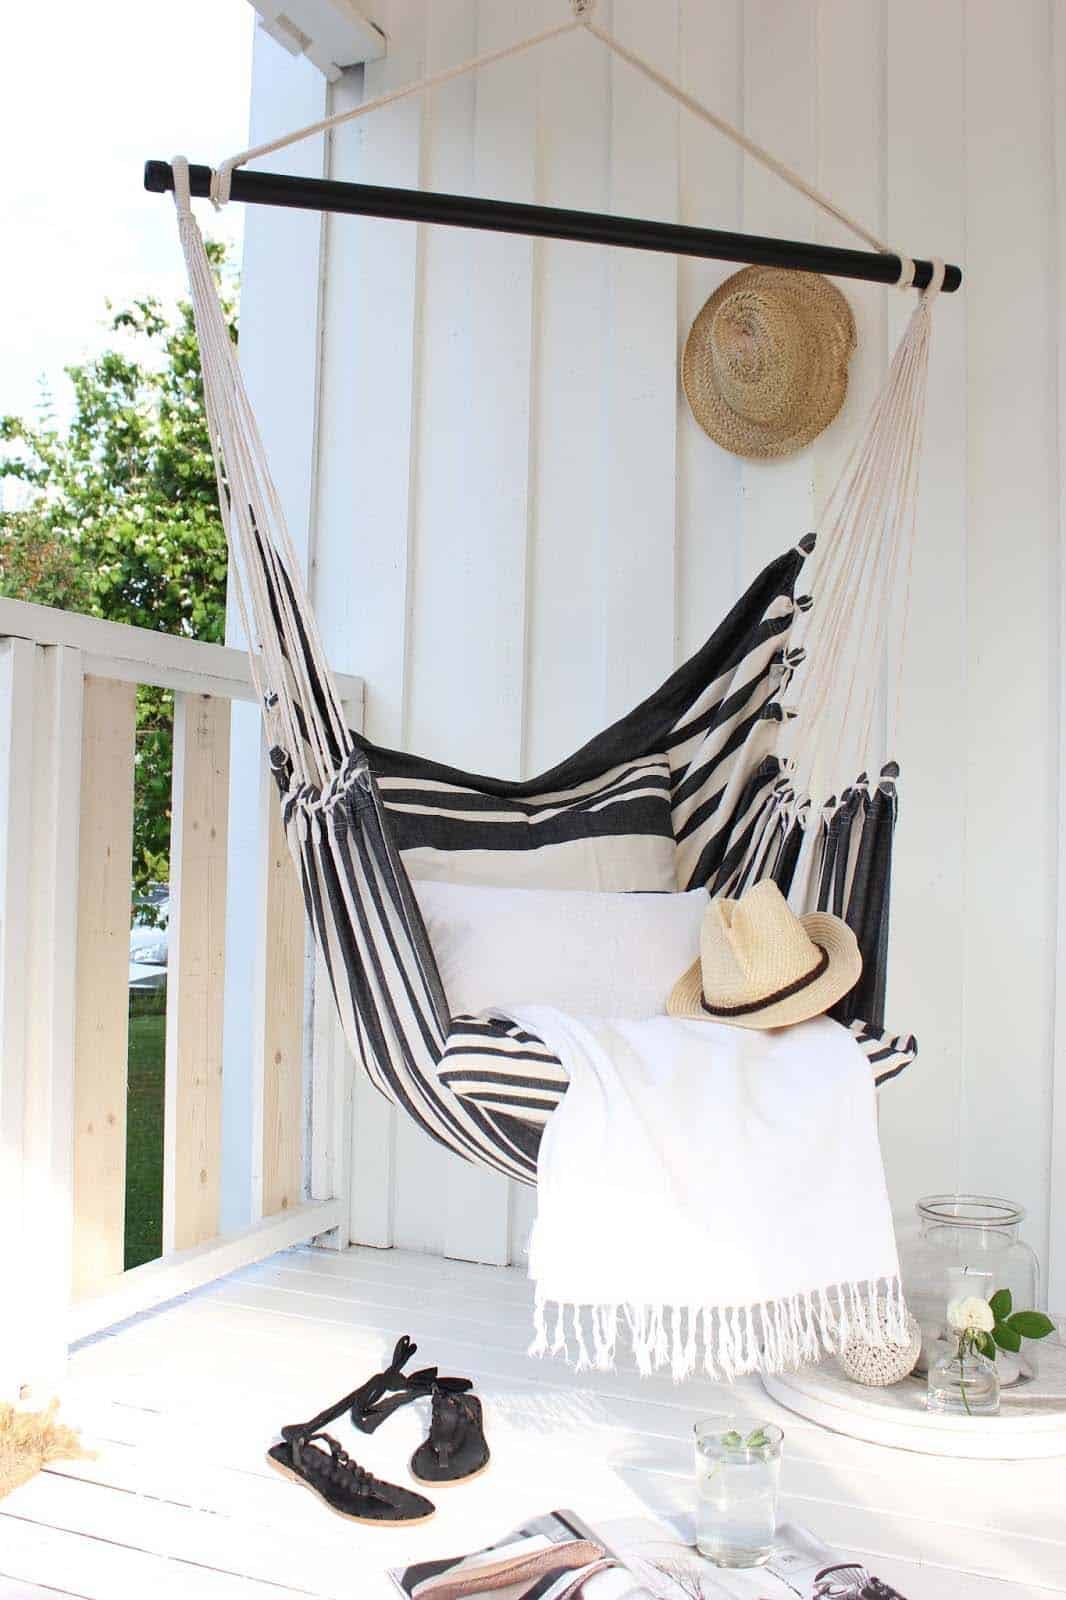 heavenly outdoor hammock ideas 21 1 kindesign 31 heavenly outdoor hammock ideas making the most of summer  rh   onekindesign